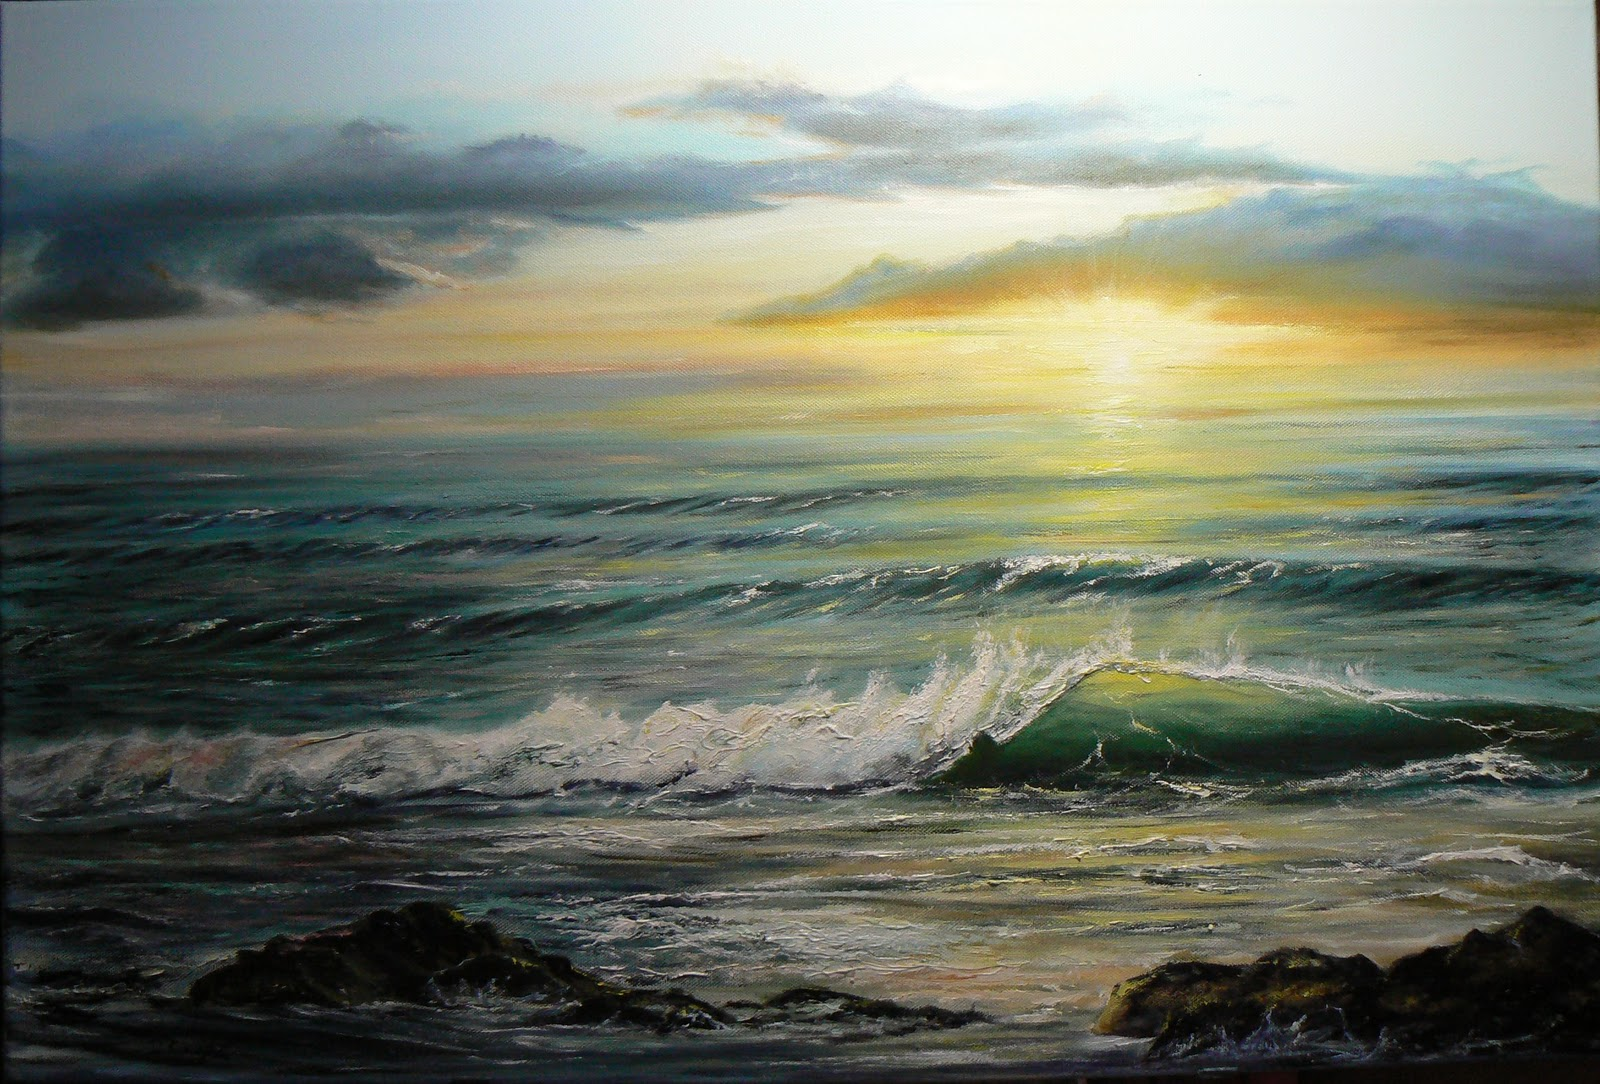 David Gayda marine, Seascape and wave painting artist ...